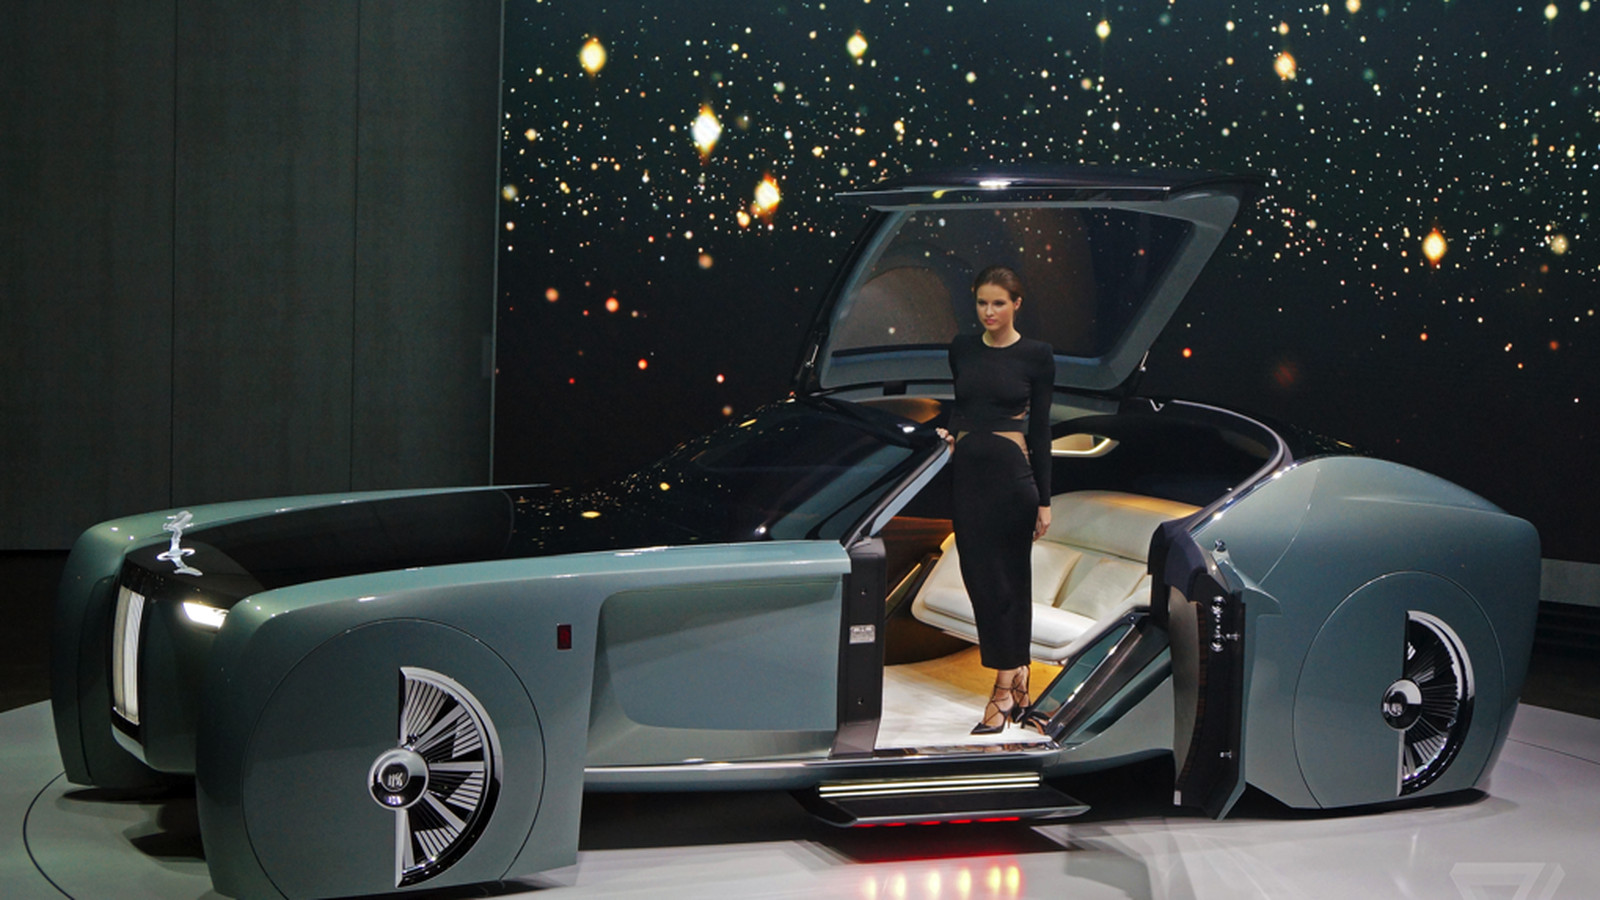 Roles Royal Car Wallpaper The Rolls Royce Vision 100 Concept Is Completely